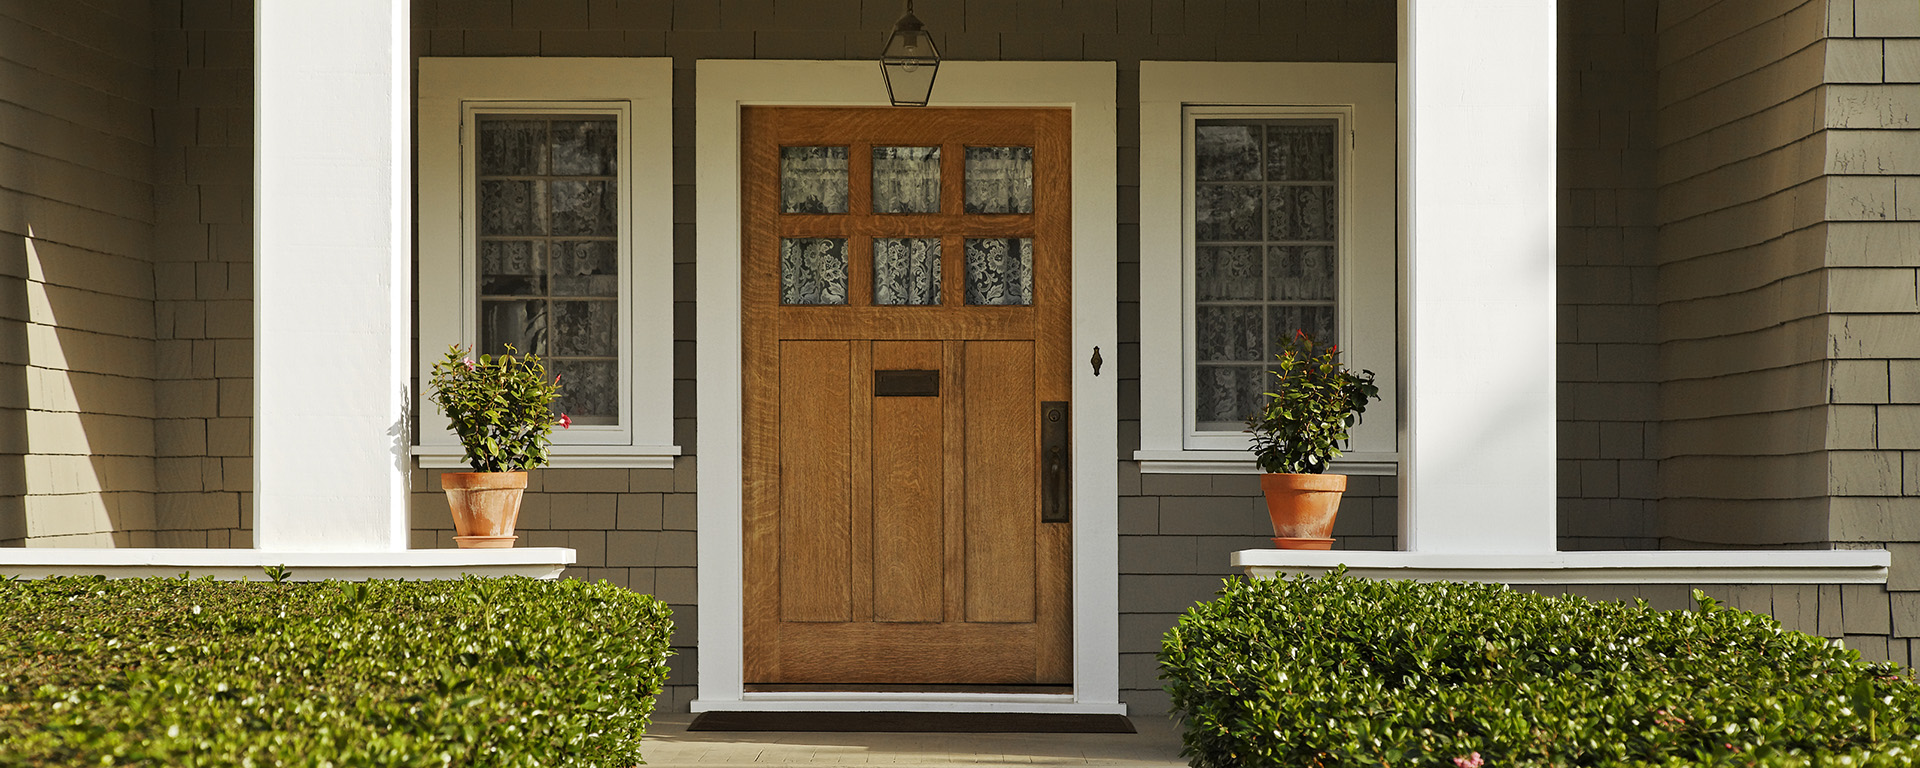 Mahogany colored door on front porch.